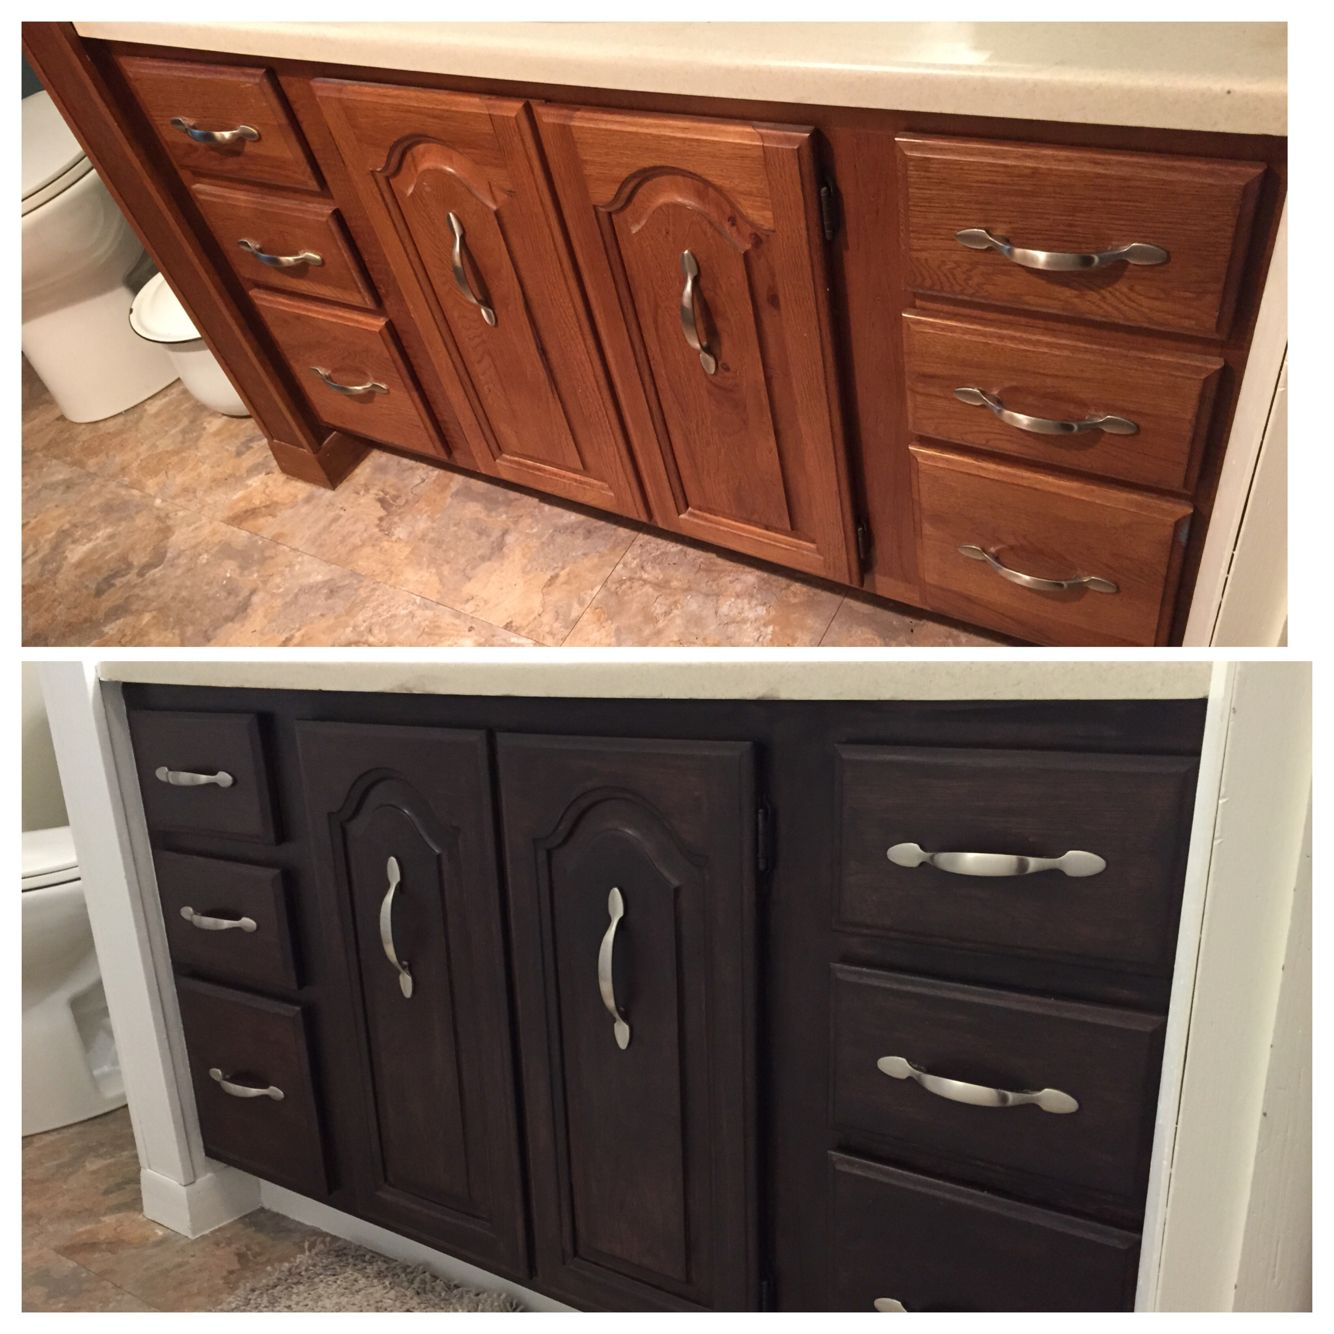 Updated An Oak Builders Grade Vanity With Rustoleum Kona Stain And Polyurethane Stripped Off Original